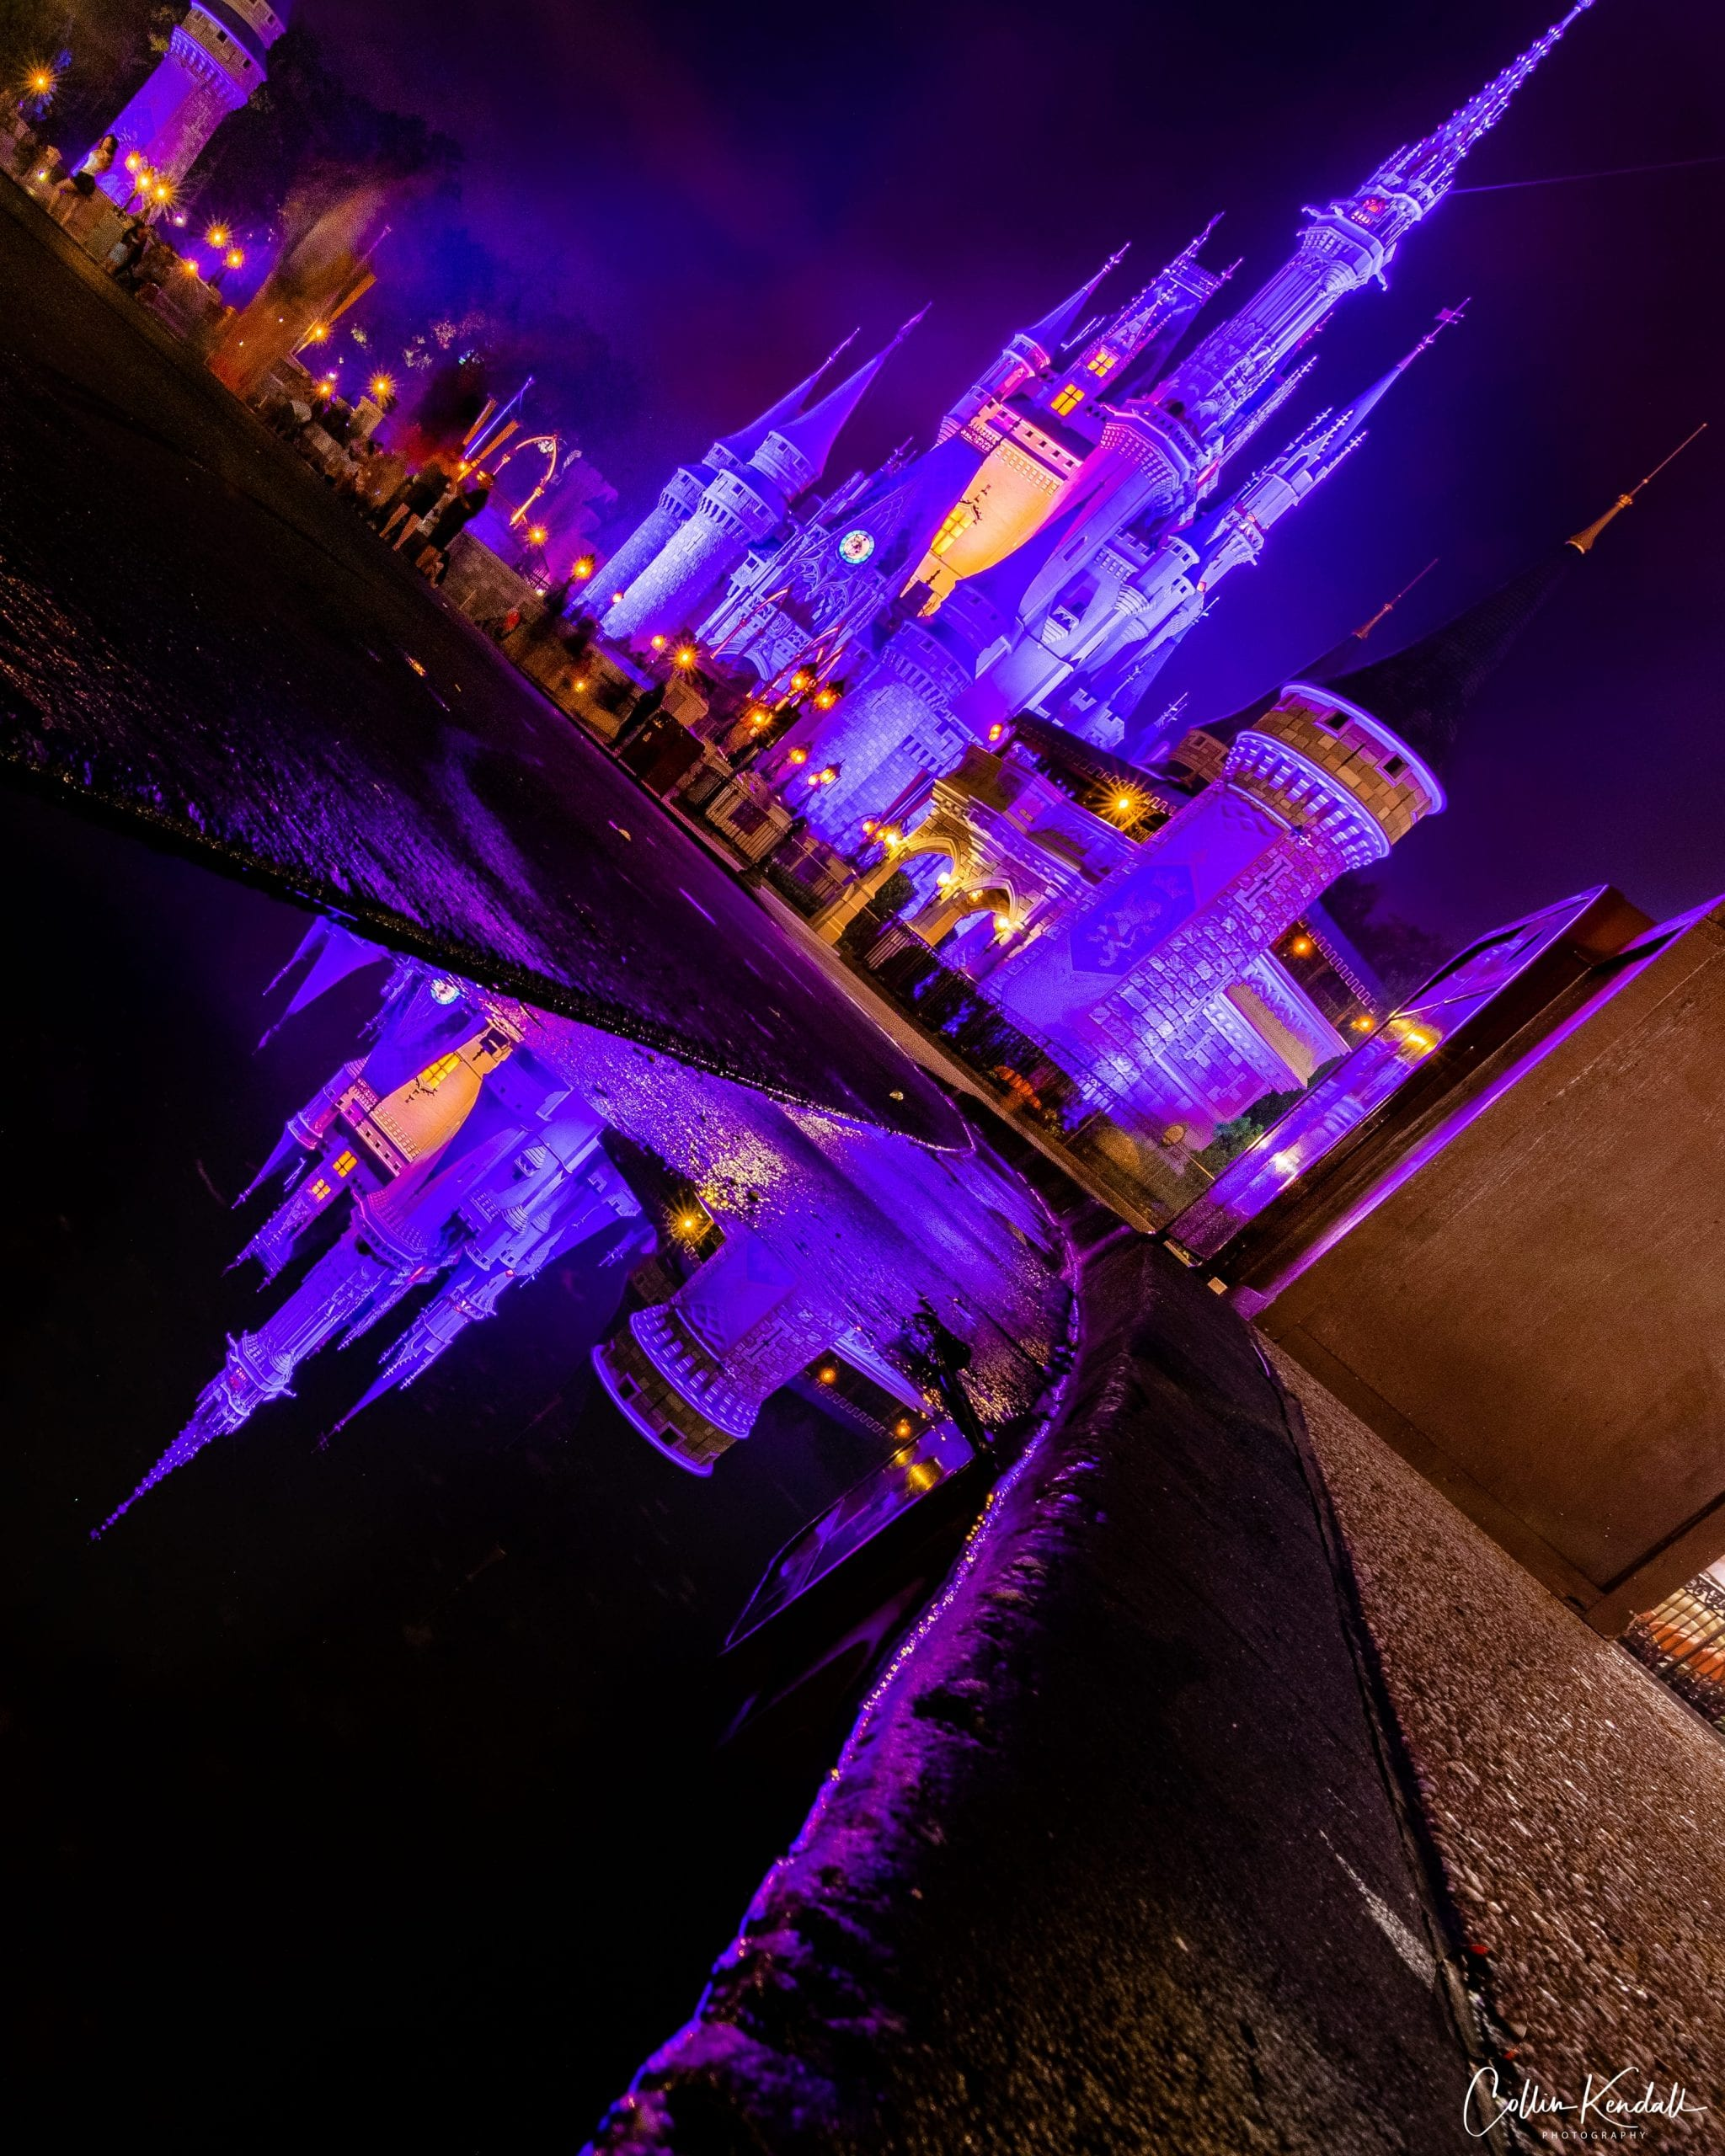 Our Typical Disney World 7 Day Itinerary - Magic Kingdom Day!